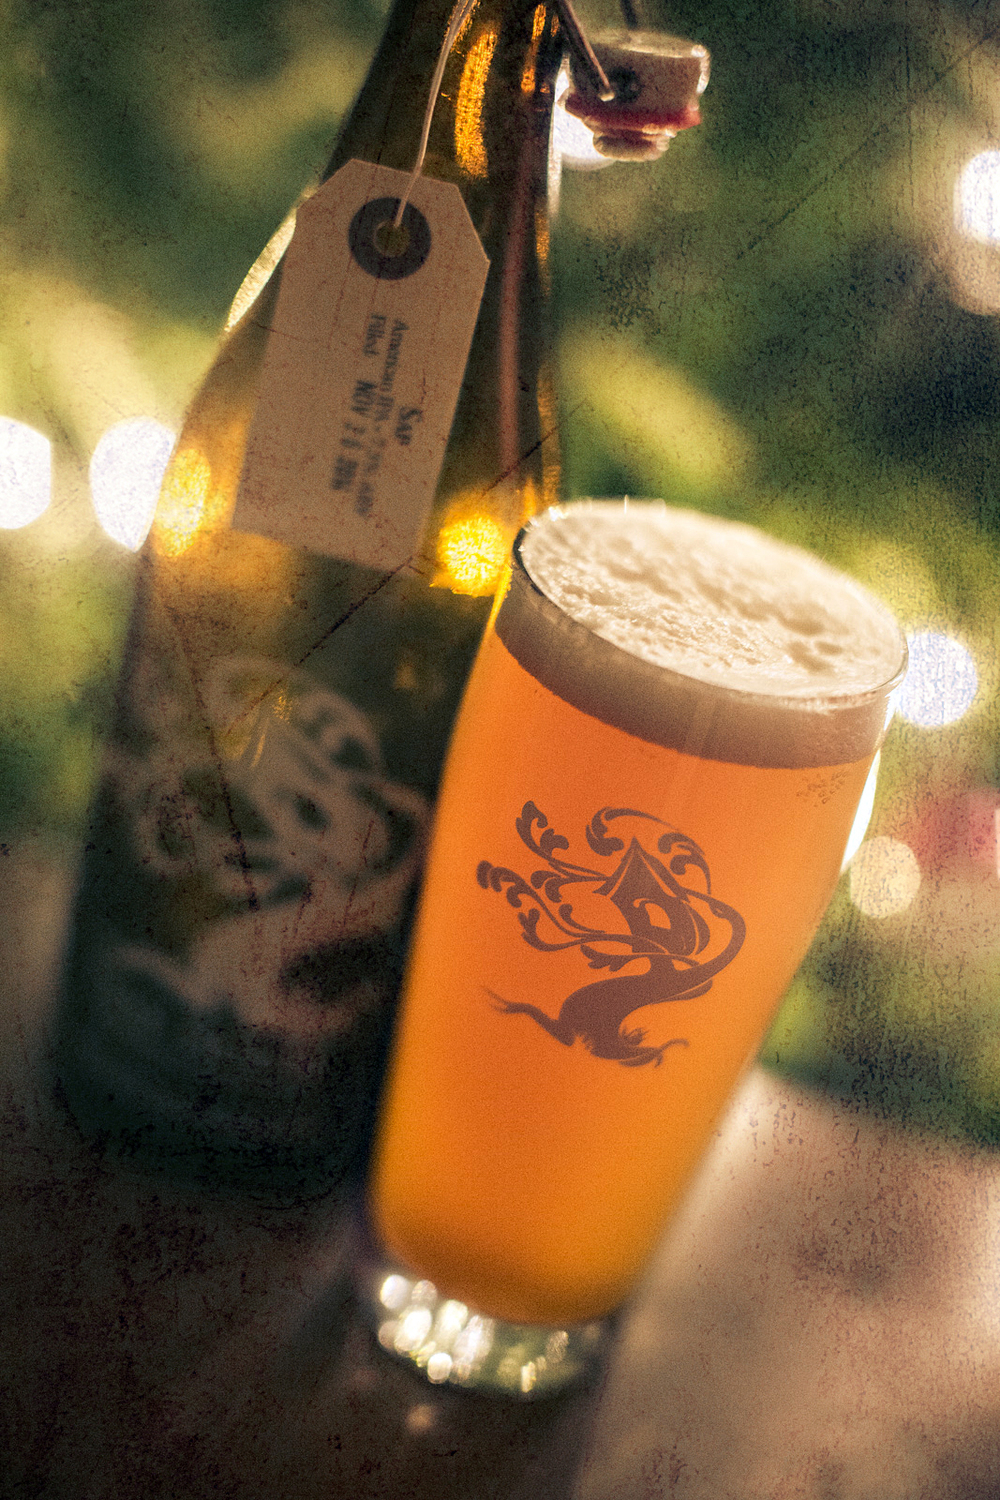 Our 750 ML refillable bottle and Sap - a Tree House IPA.